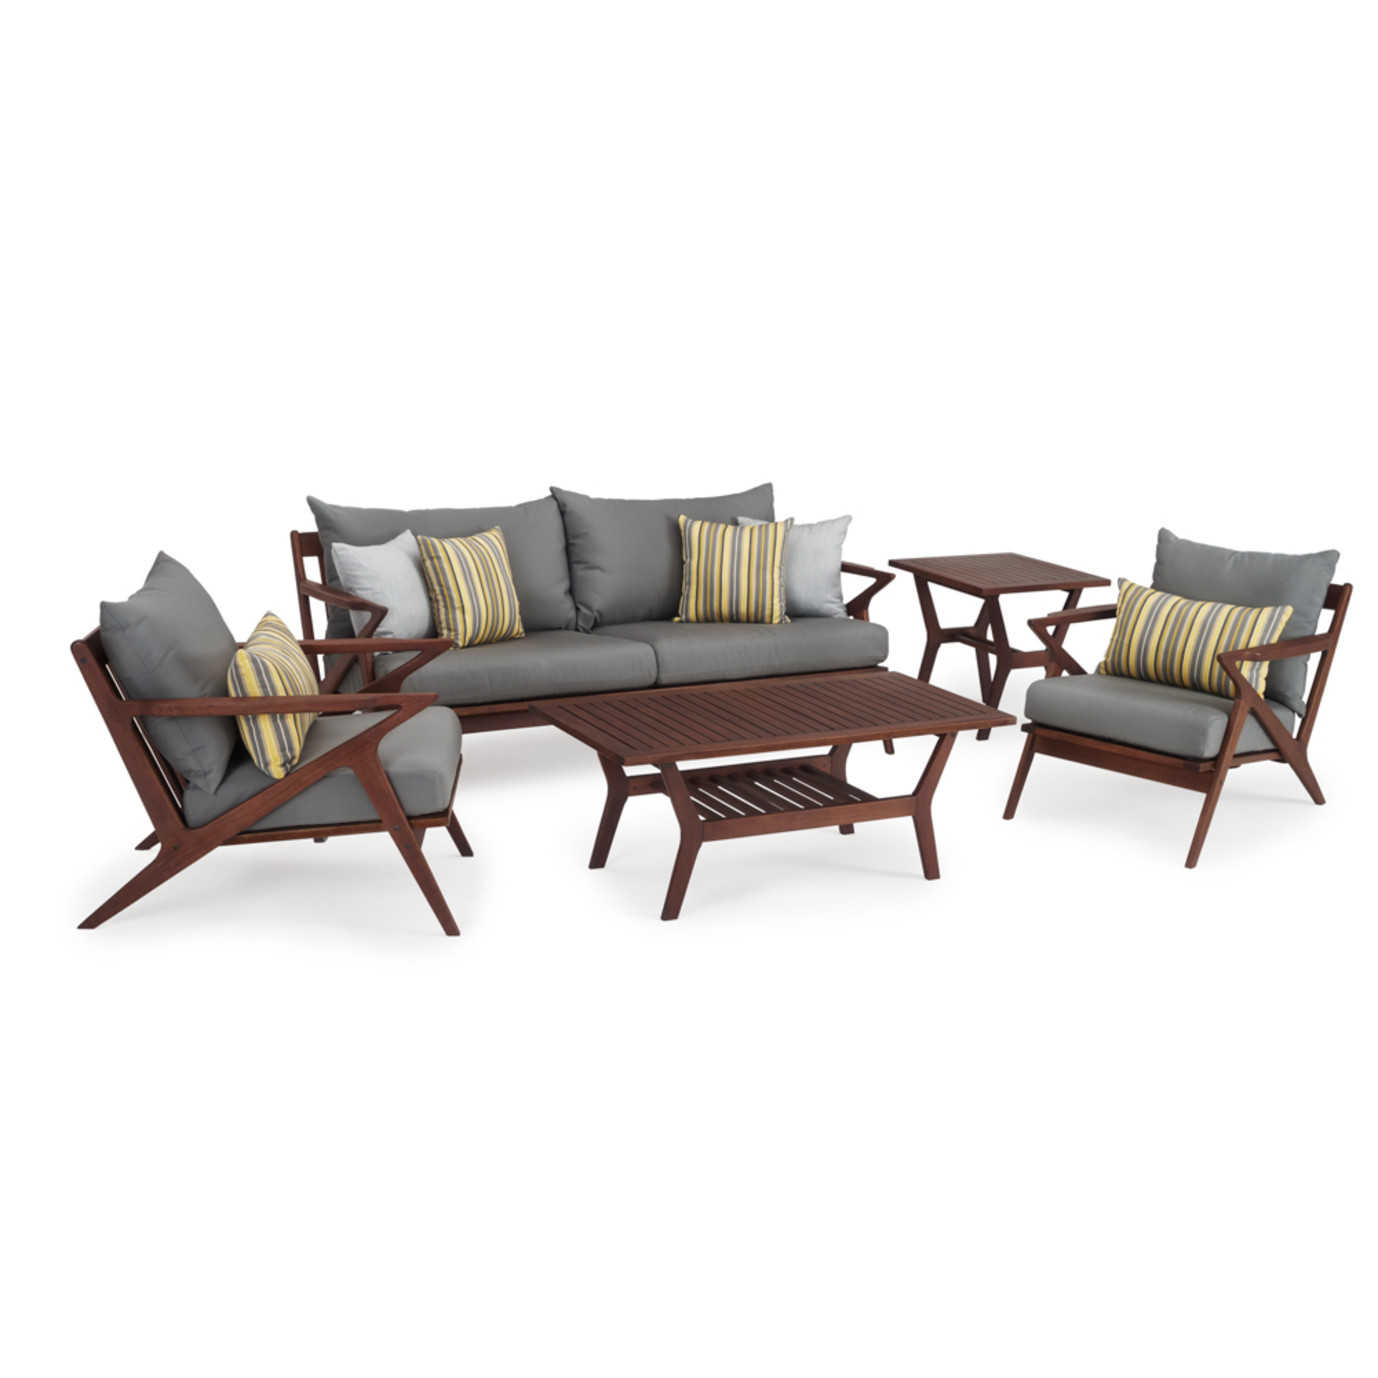 Vaughn 5 Piece Seating Set - Charcoal Gray